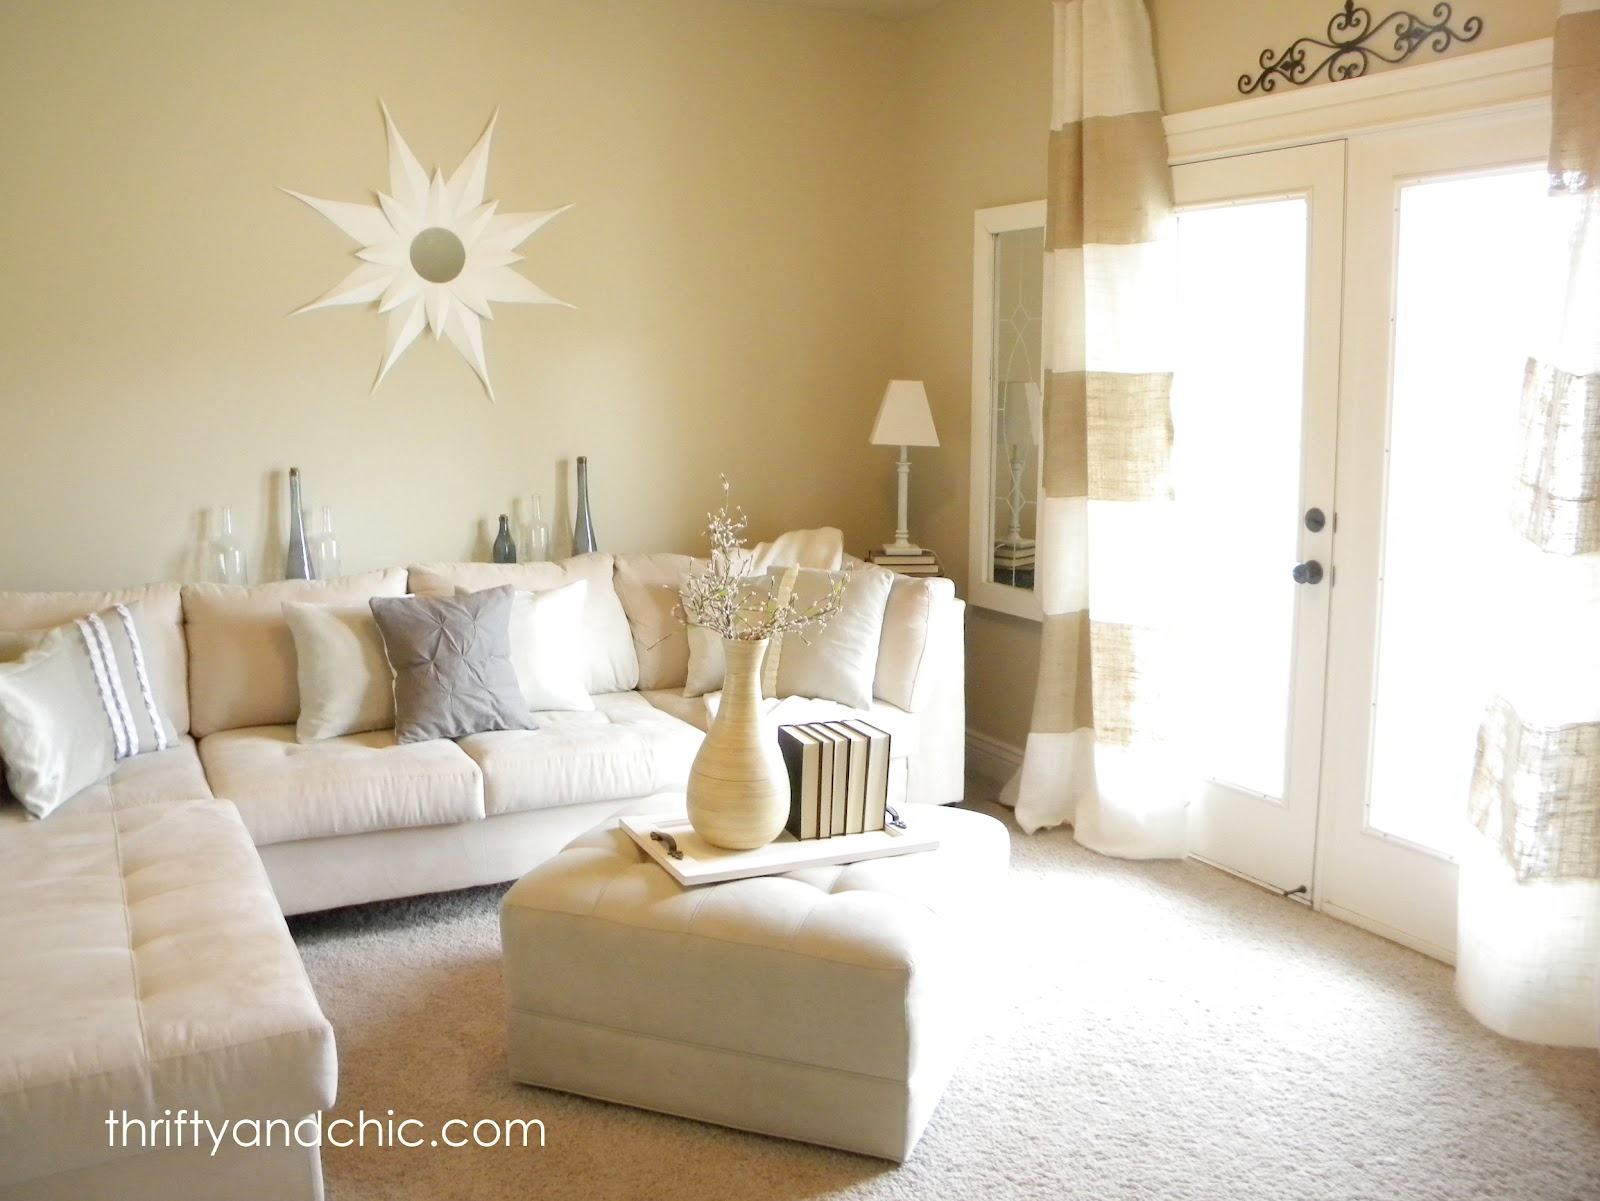 White Living Room Curtains: DIY Projects And Home Decor